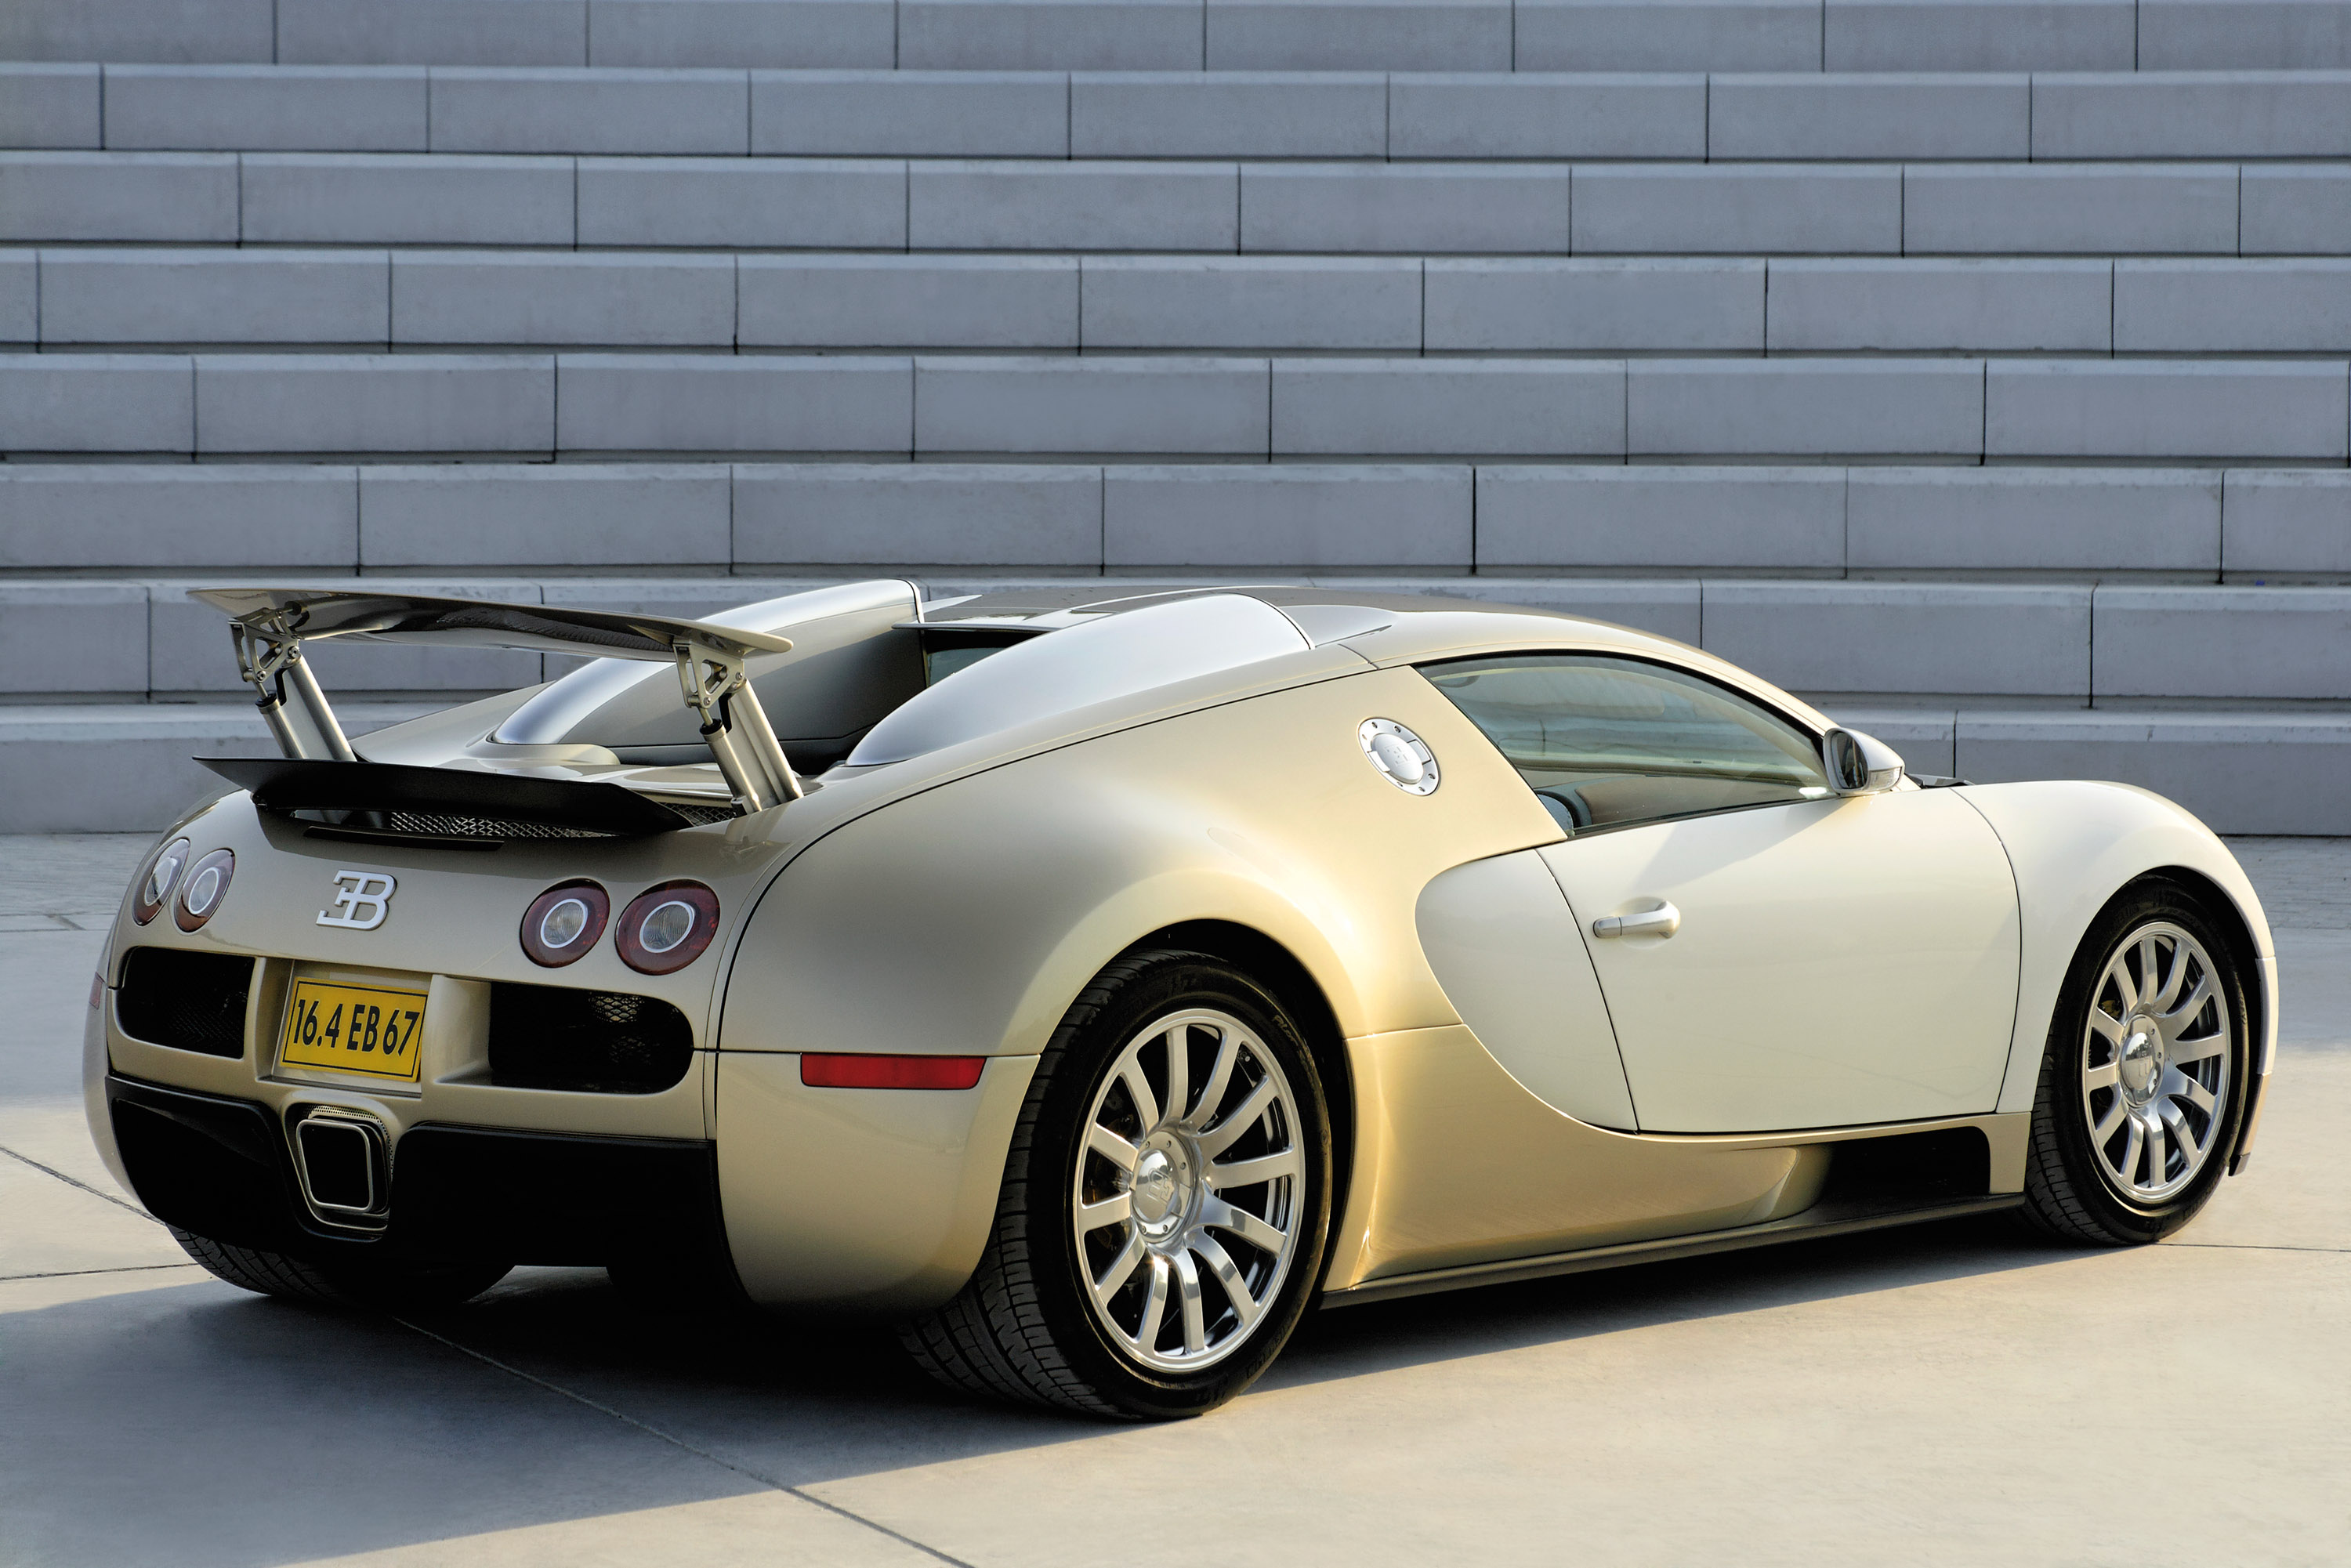 54726 download wallpaper Auto, Bugatti, Cars, Style, Veyron screensavers and pictures for free